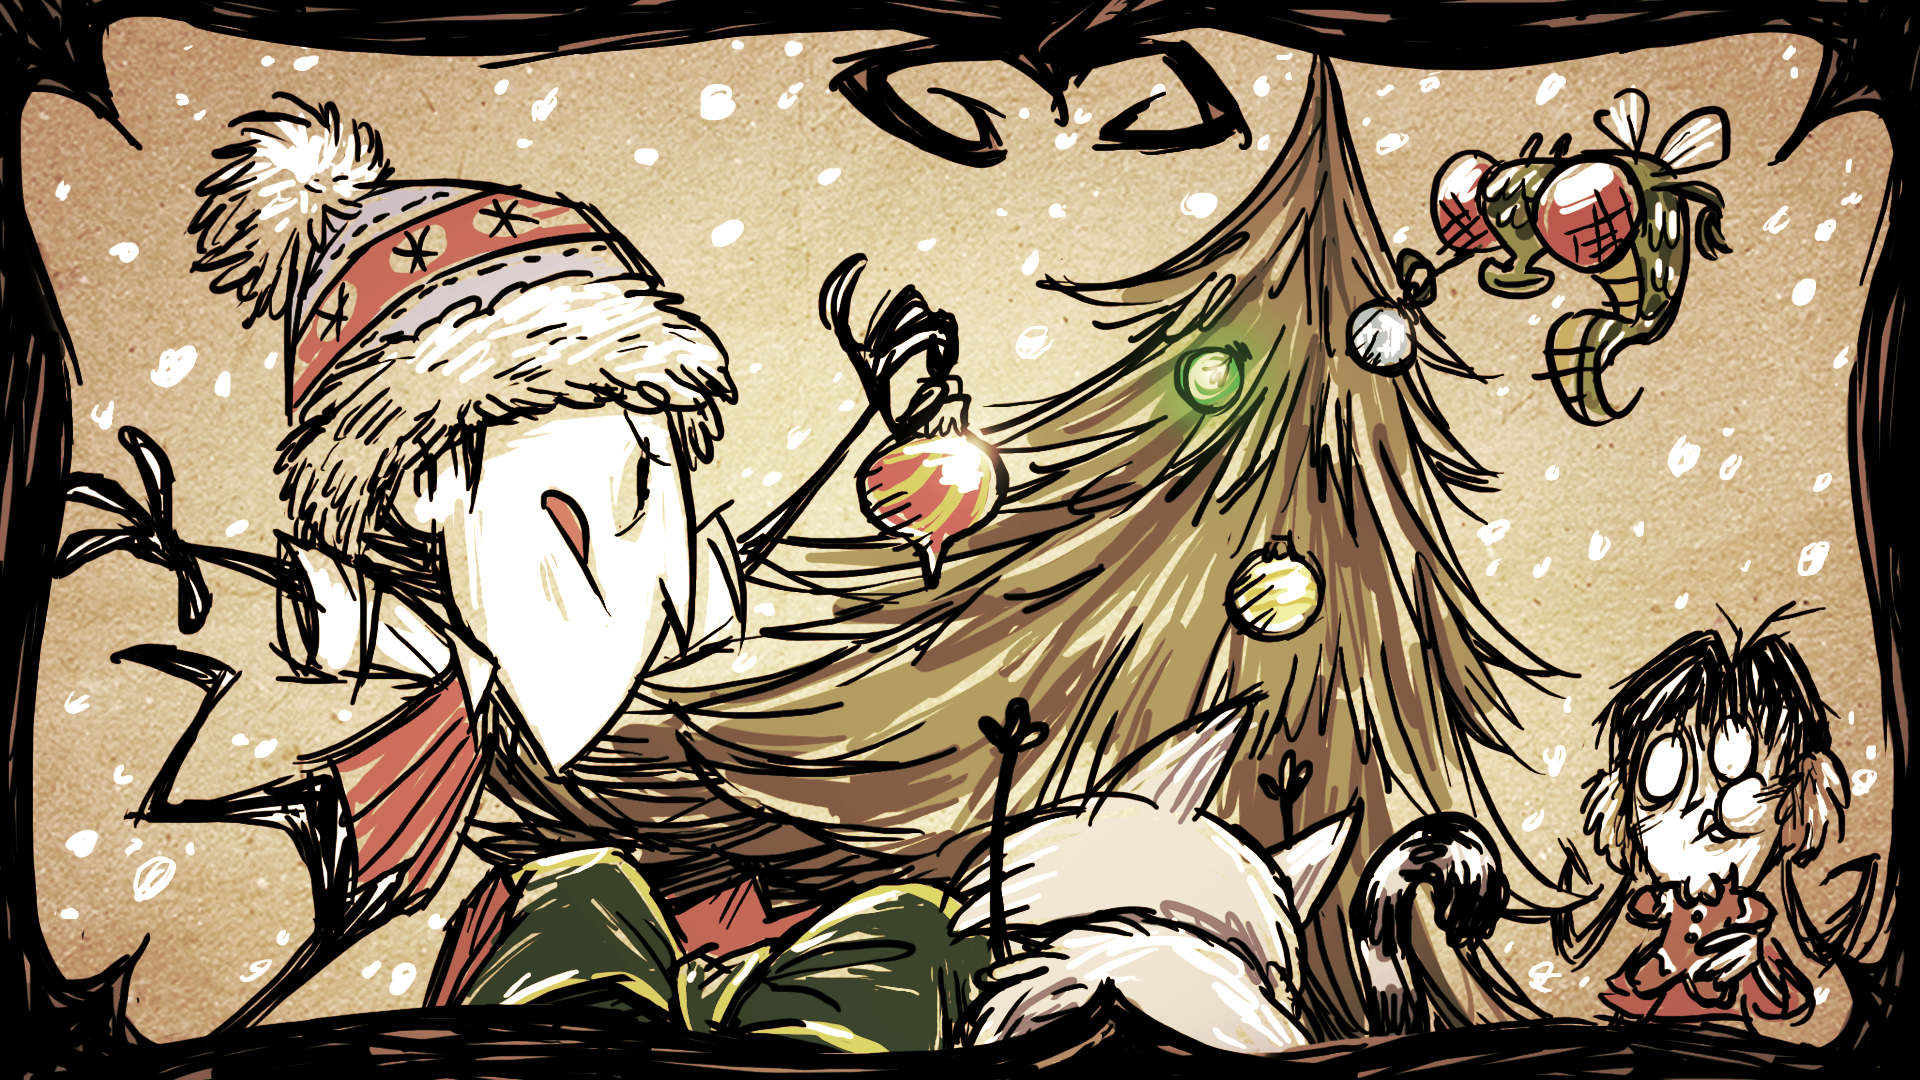 christmasbetapromo_large.png